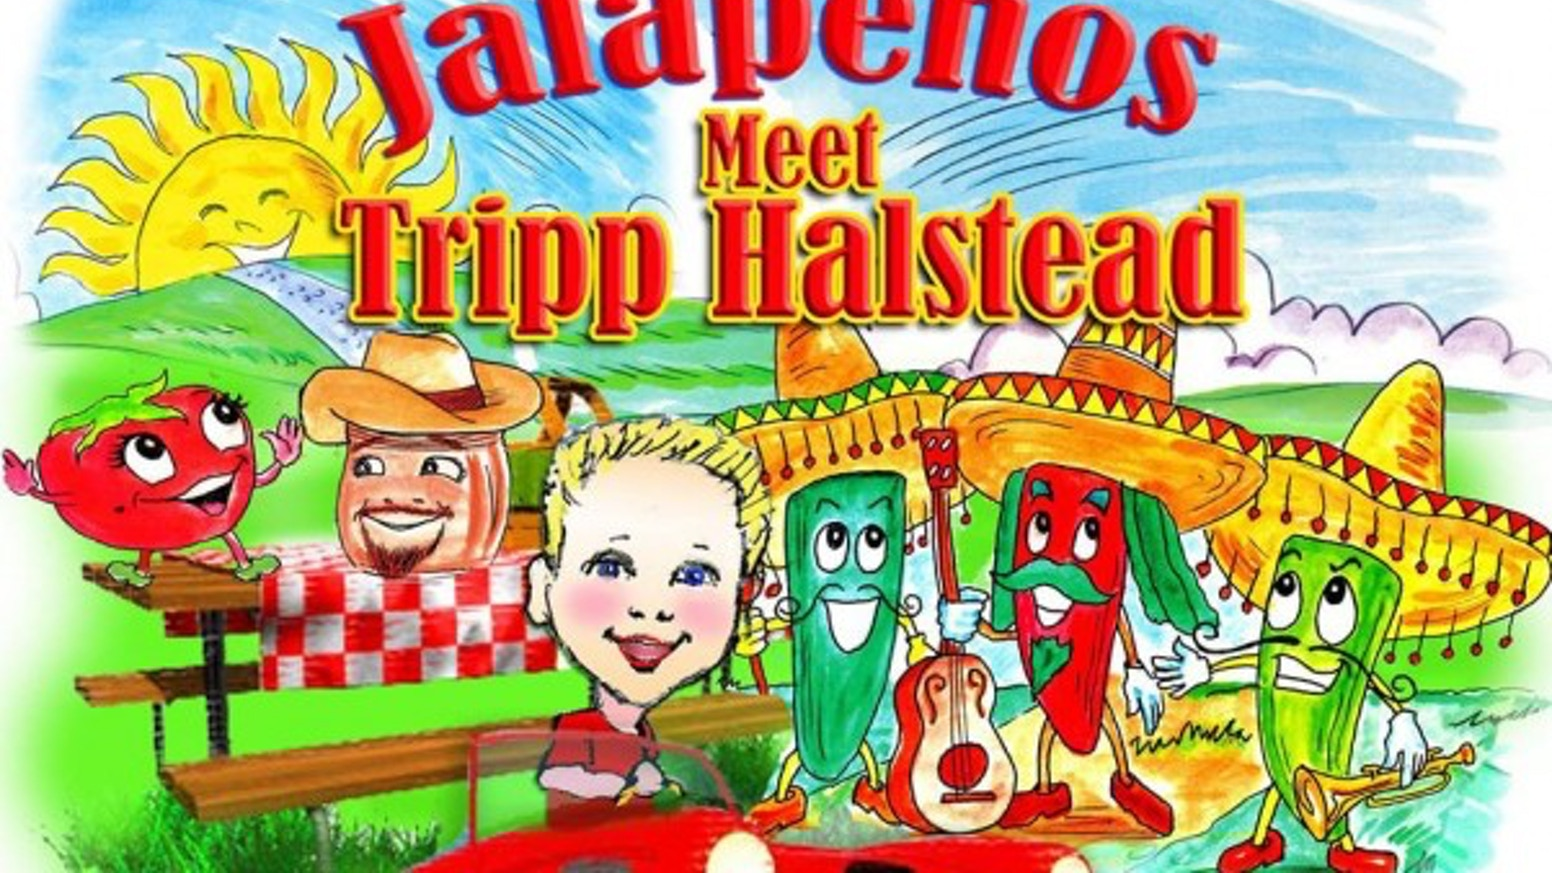 "Help us get ""The Traveling Jalapenos Meet Tripp Halstead"" off to a great start so we can keep publishing stories that create awareness."